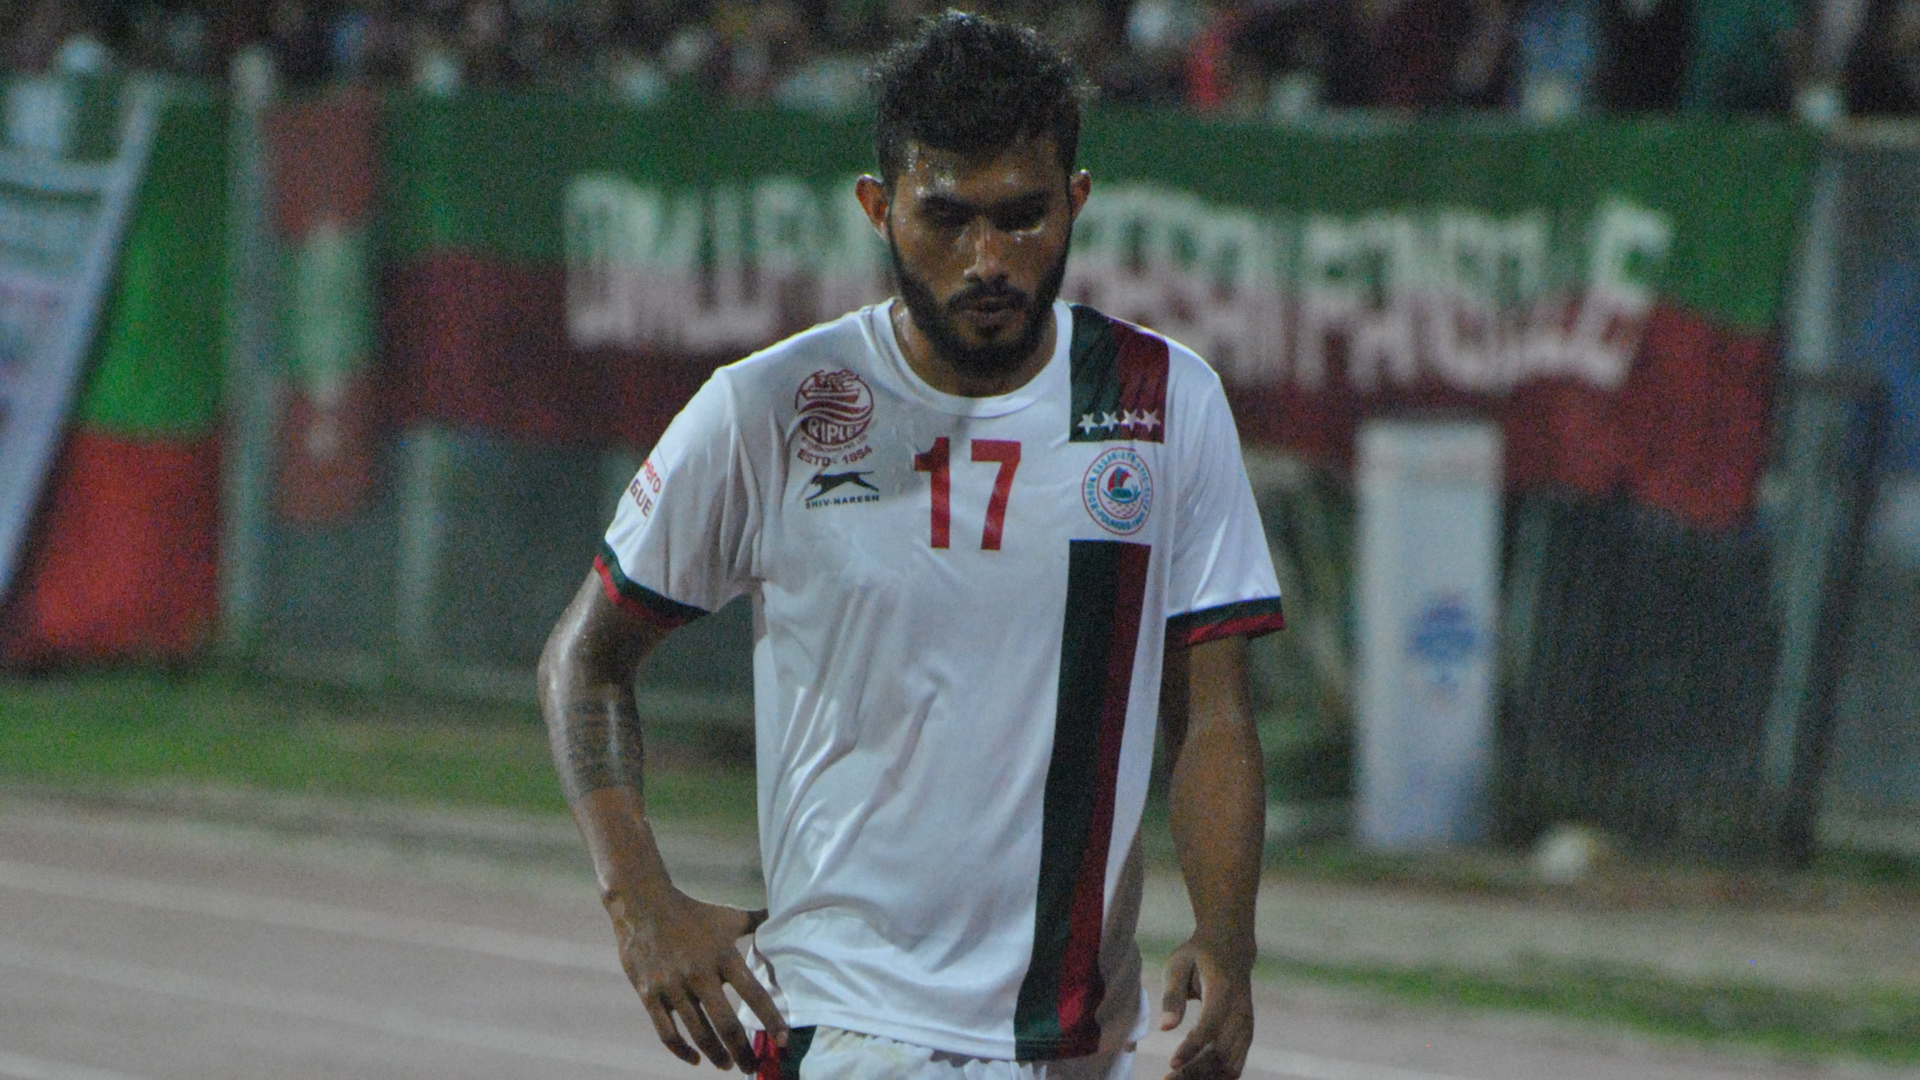 Subashish Bose Bengaluru FC Mohun Bagan I-League 2017